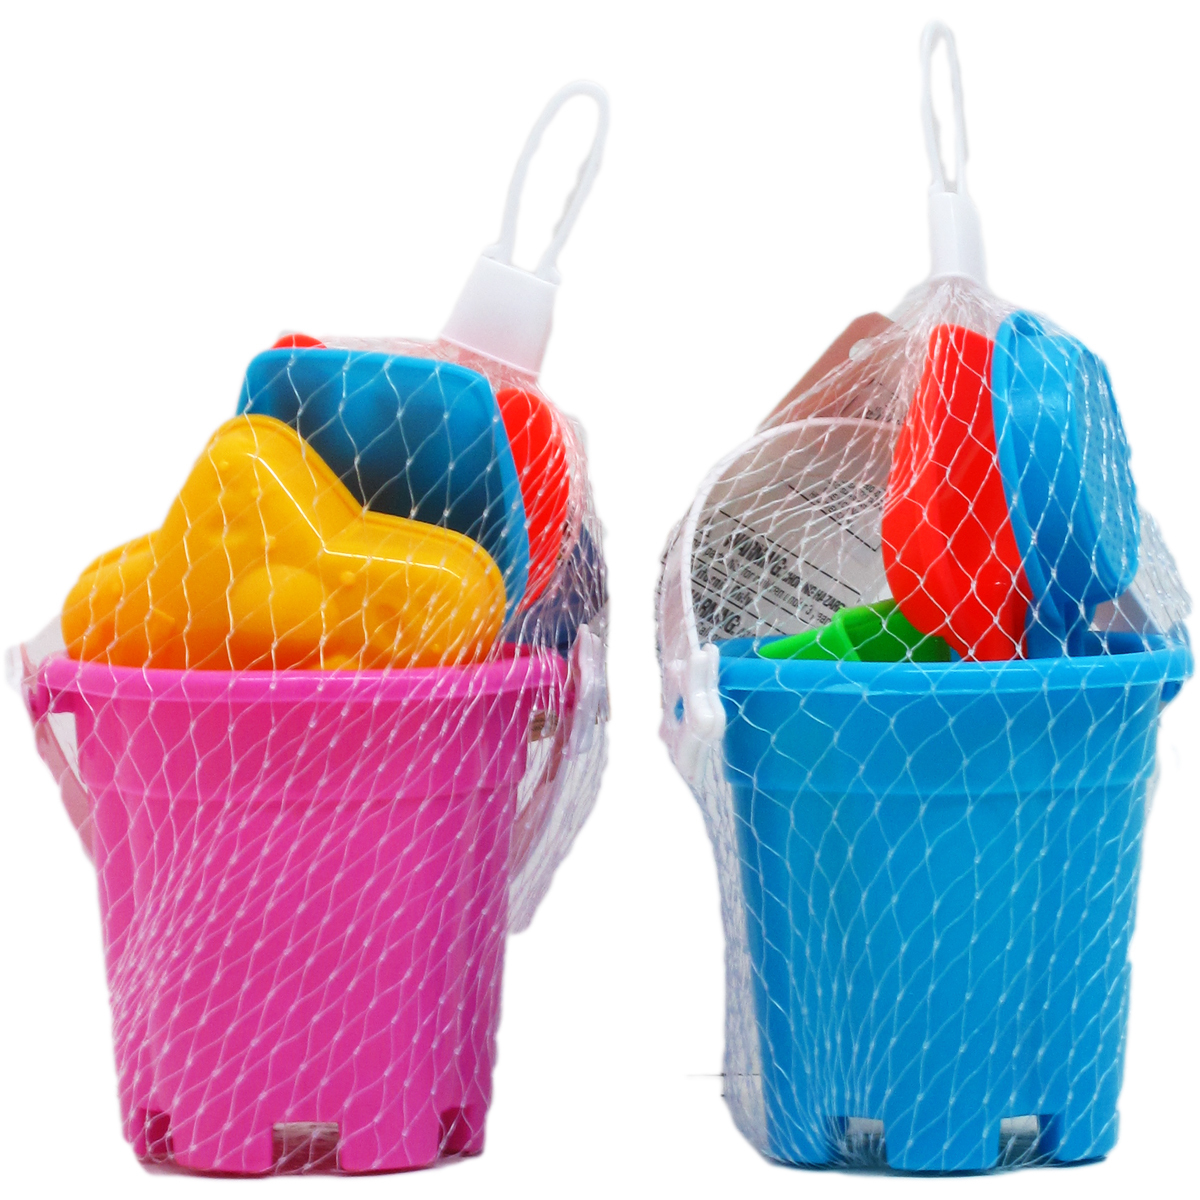 ''3.5'''' Assorted Color BEACH TOY Bucket Play Set [2285485]''